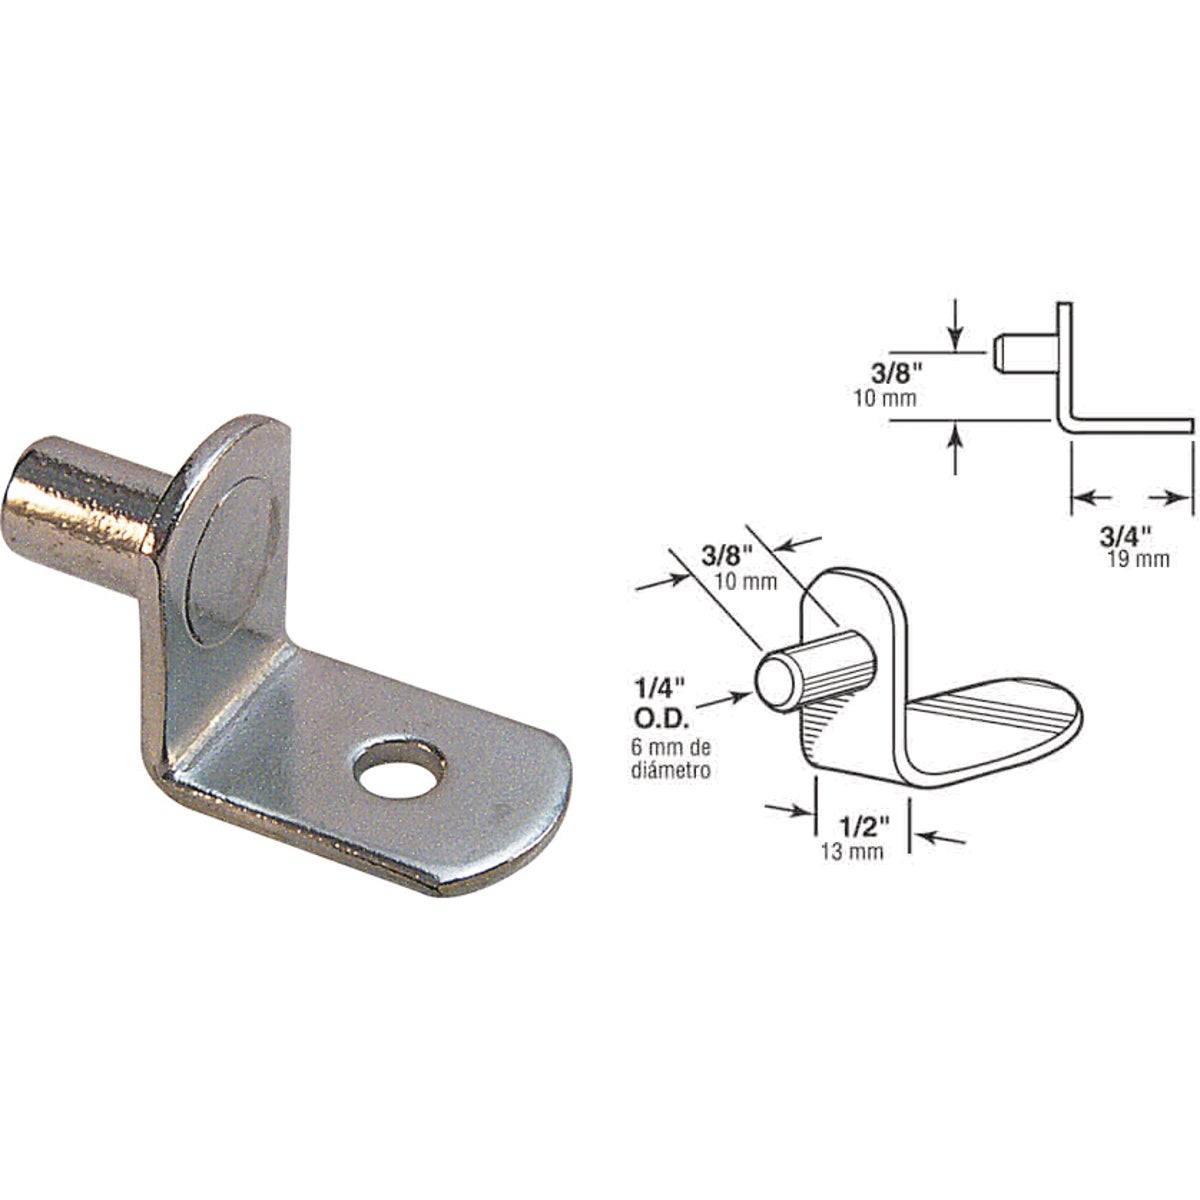 NICKEL SHELF PEG - 241941 by Prime Line Products